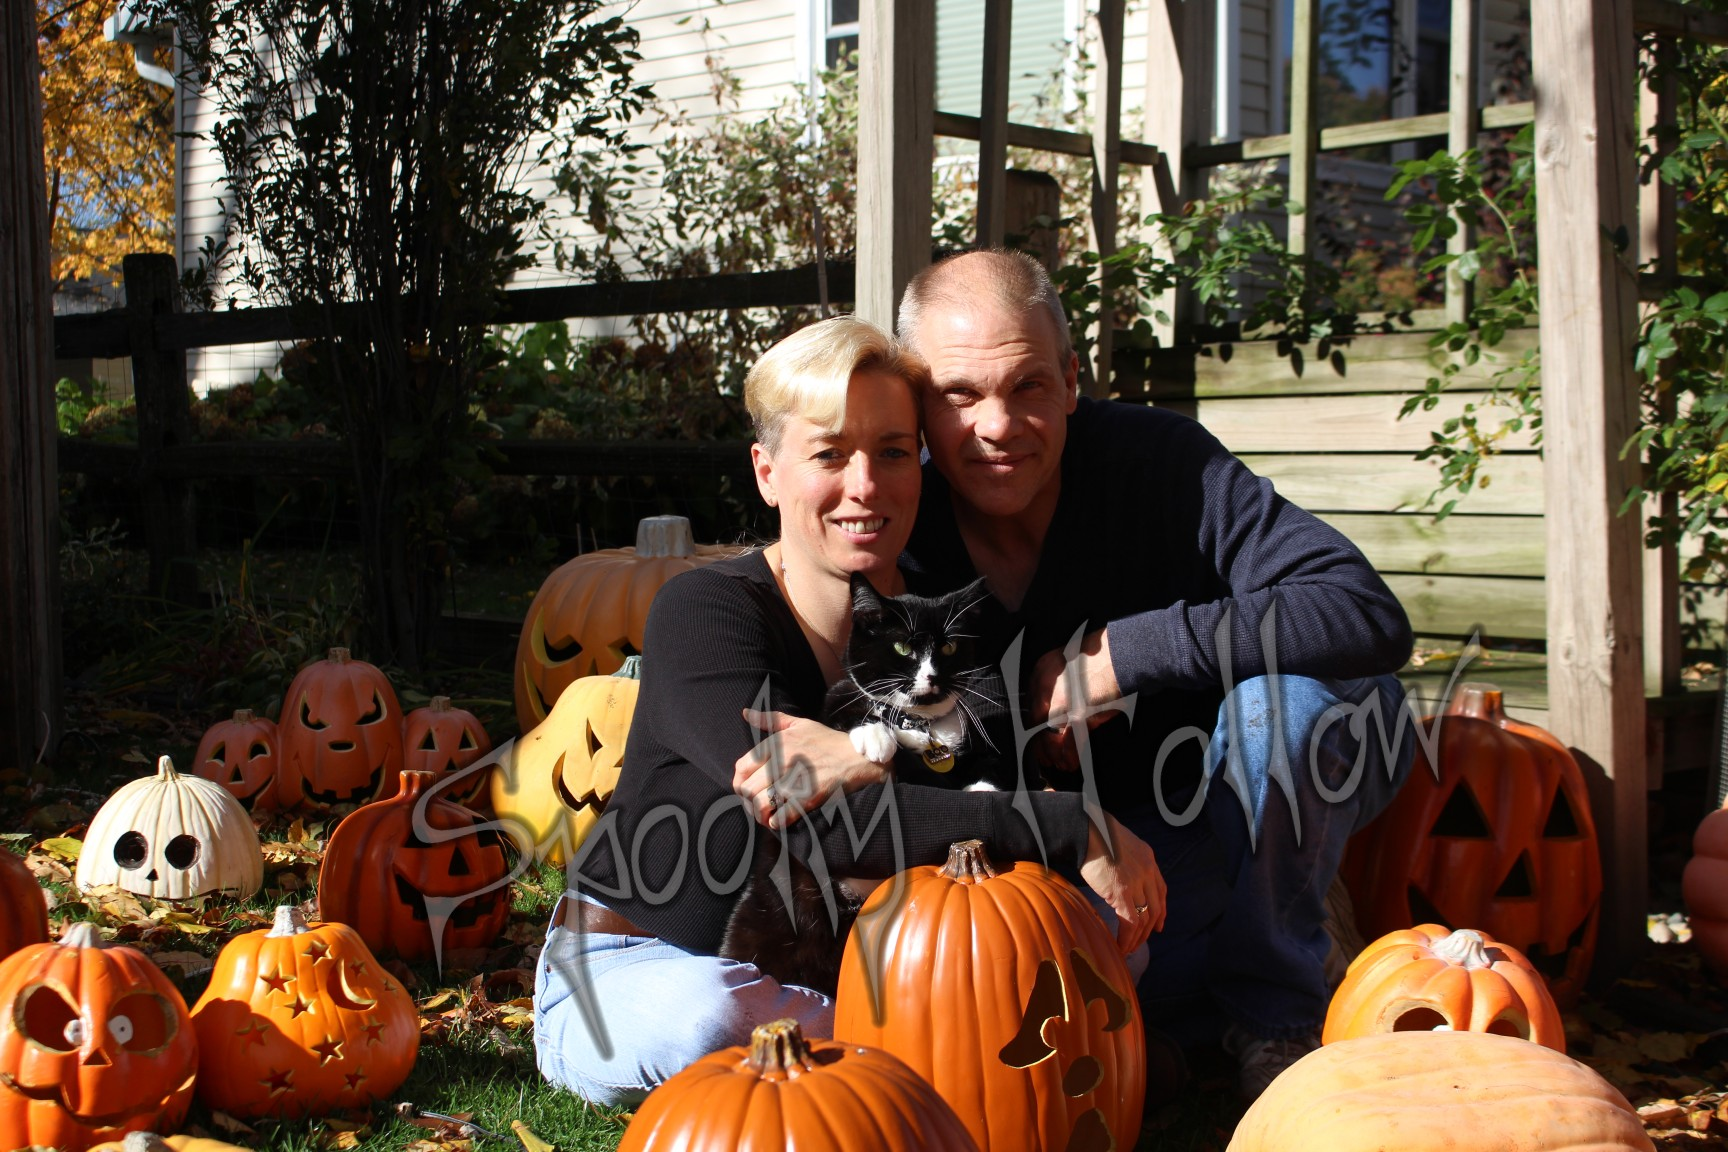 Spooky Hollow Experience owners Jack and Gina Rosenquist